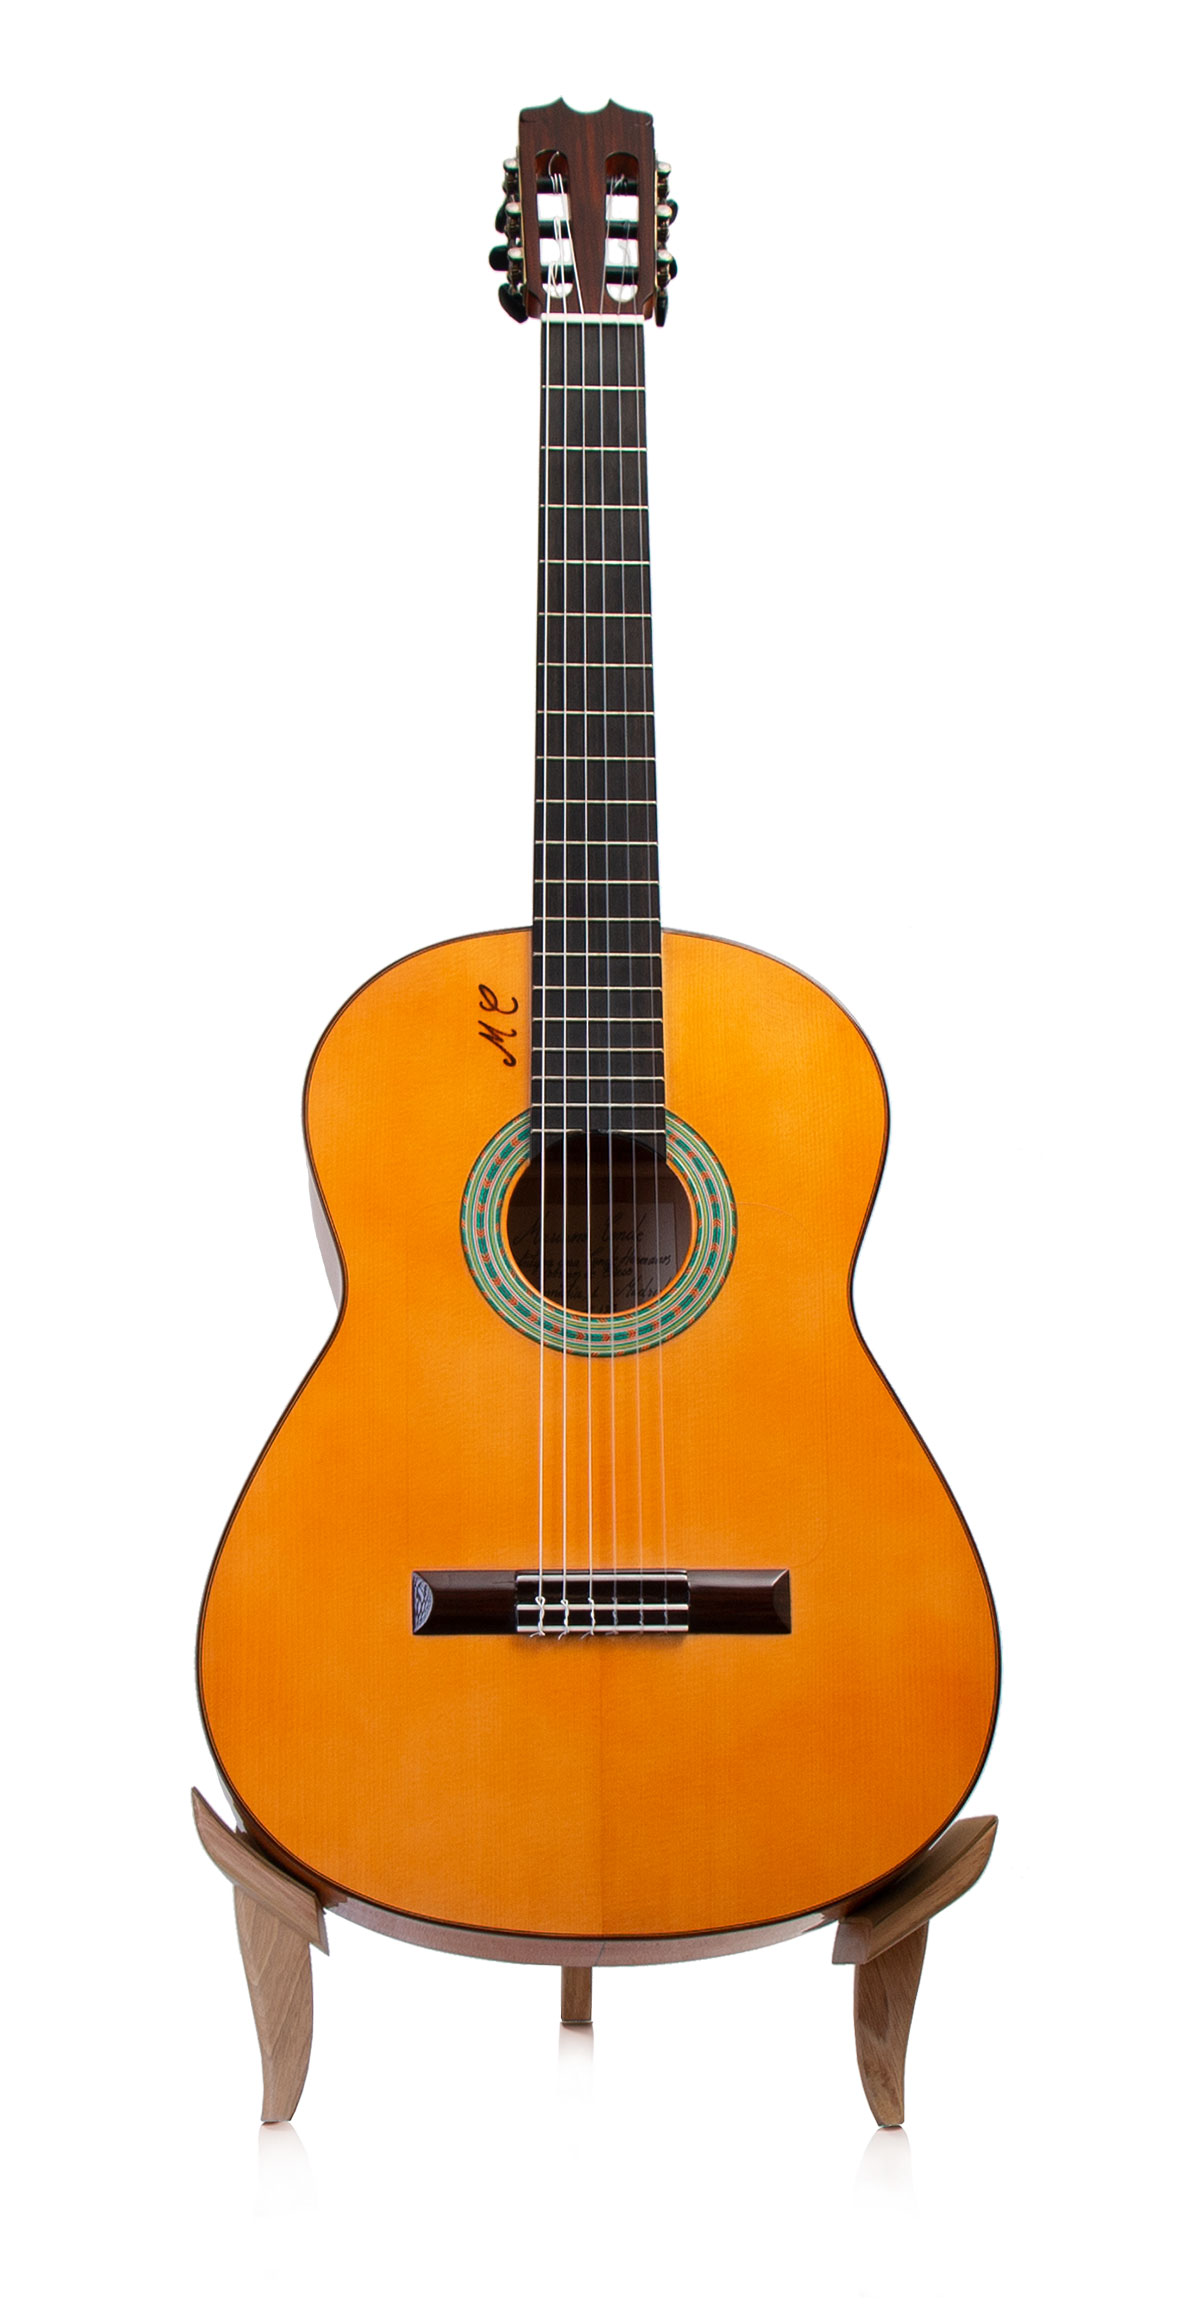 Conde flamenco guitar